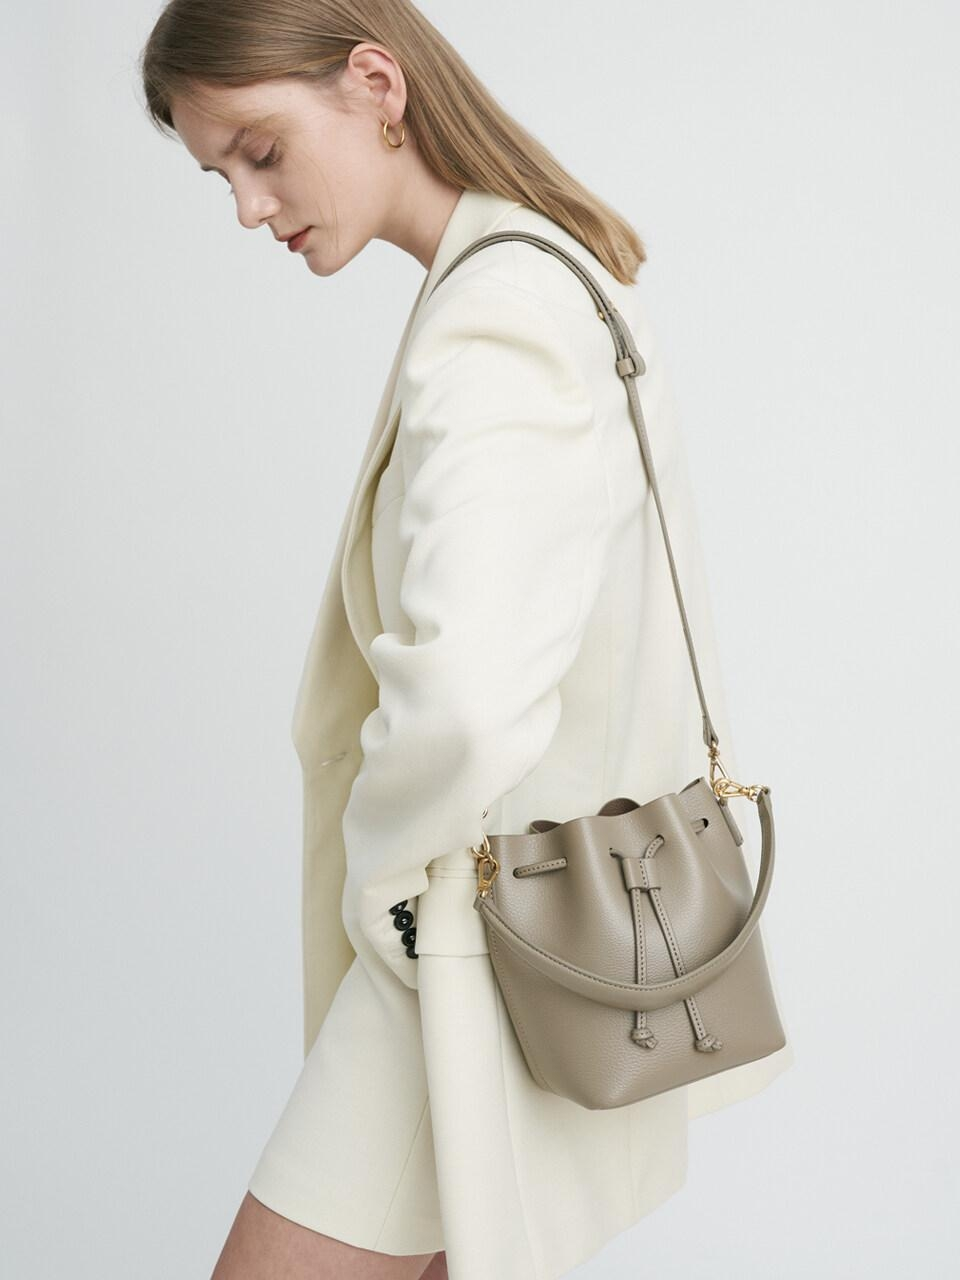 bucket style bag Stone colored bag small